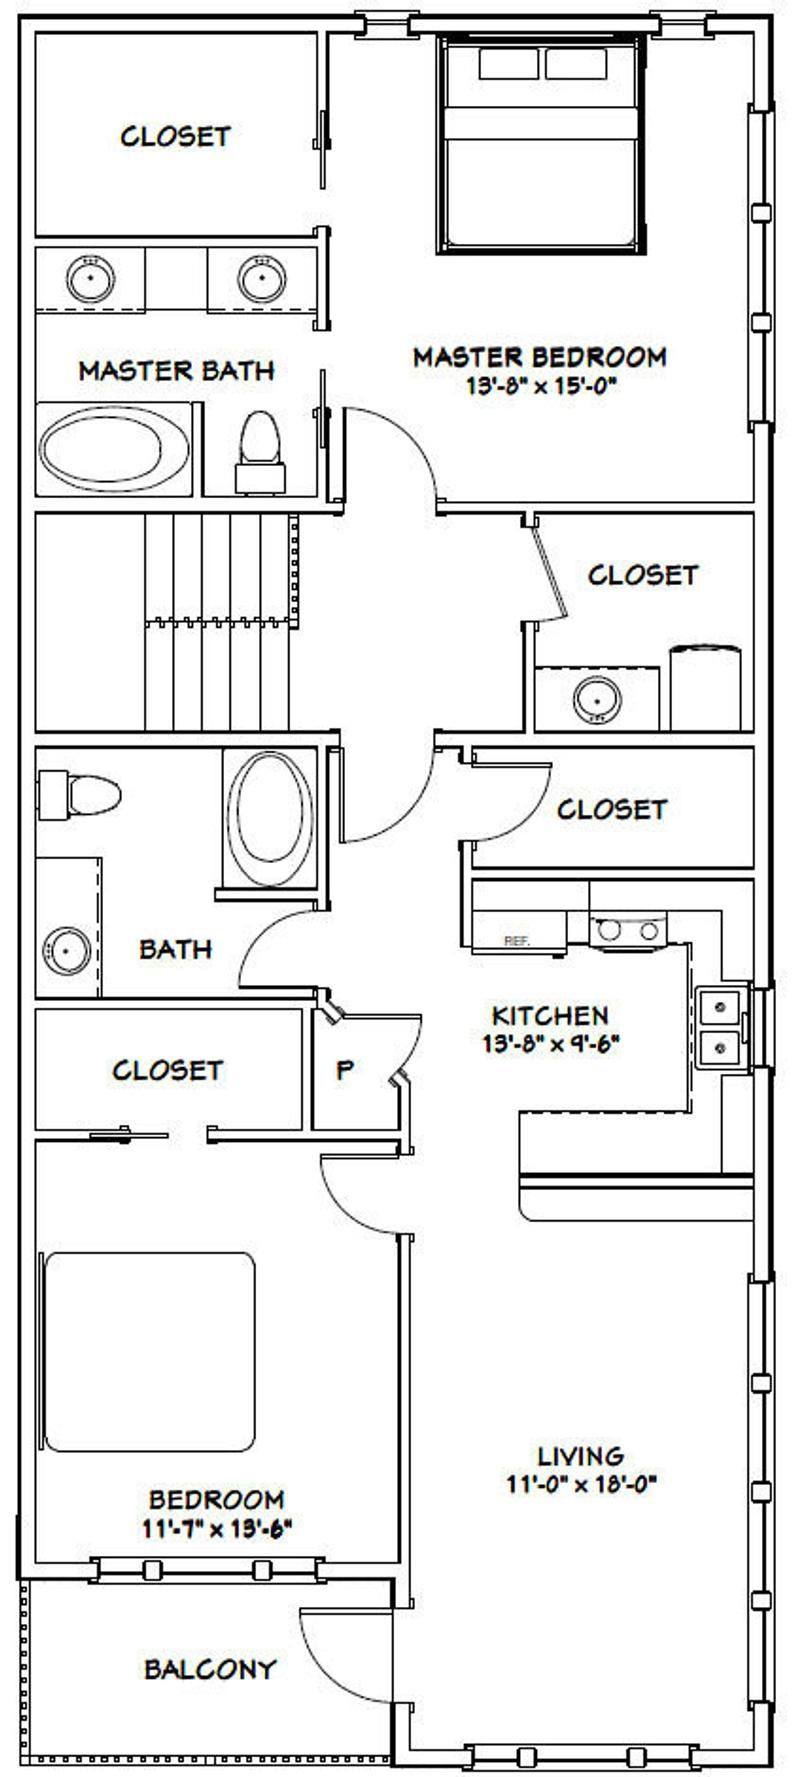 60x50 House 2 Bedroom 2 5 Bath 1694 Sq Ft Pdf Floor Etsy In 2020 Garage Plans With Loft Garage House Plans Floor Plans